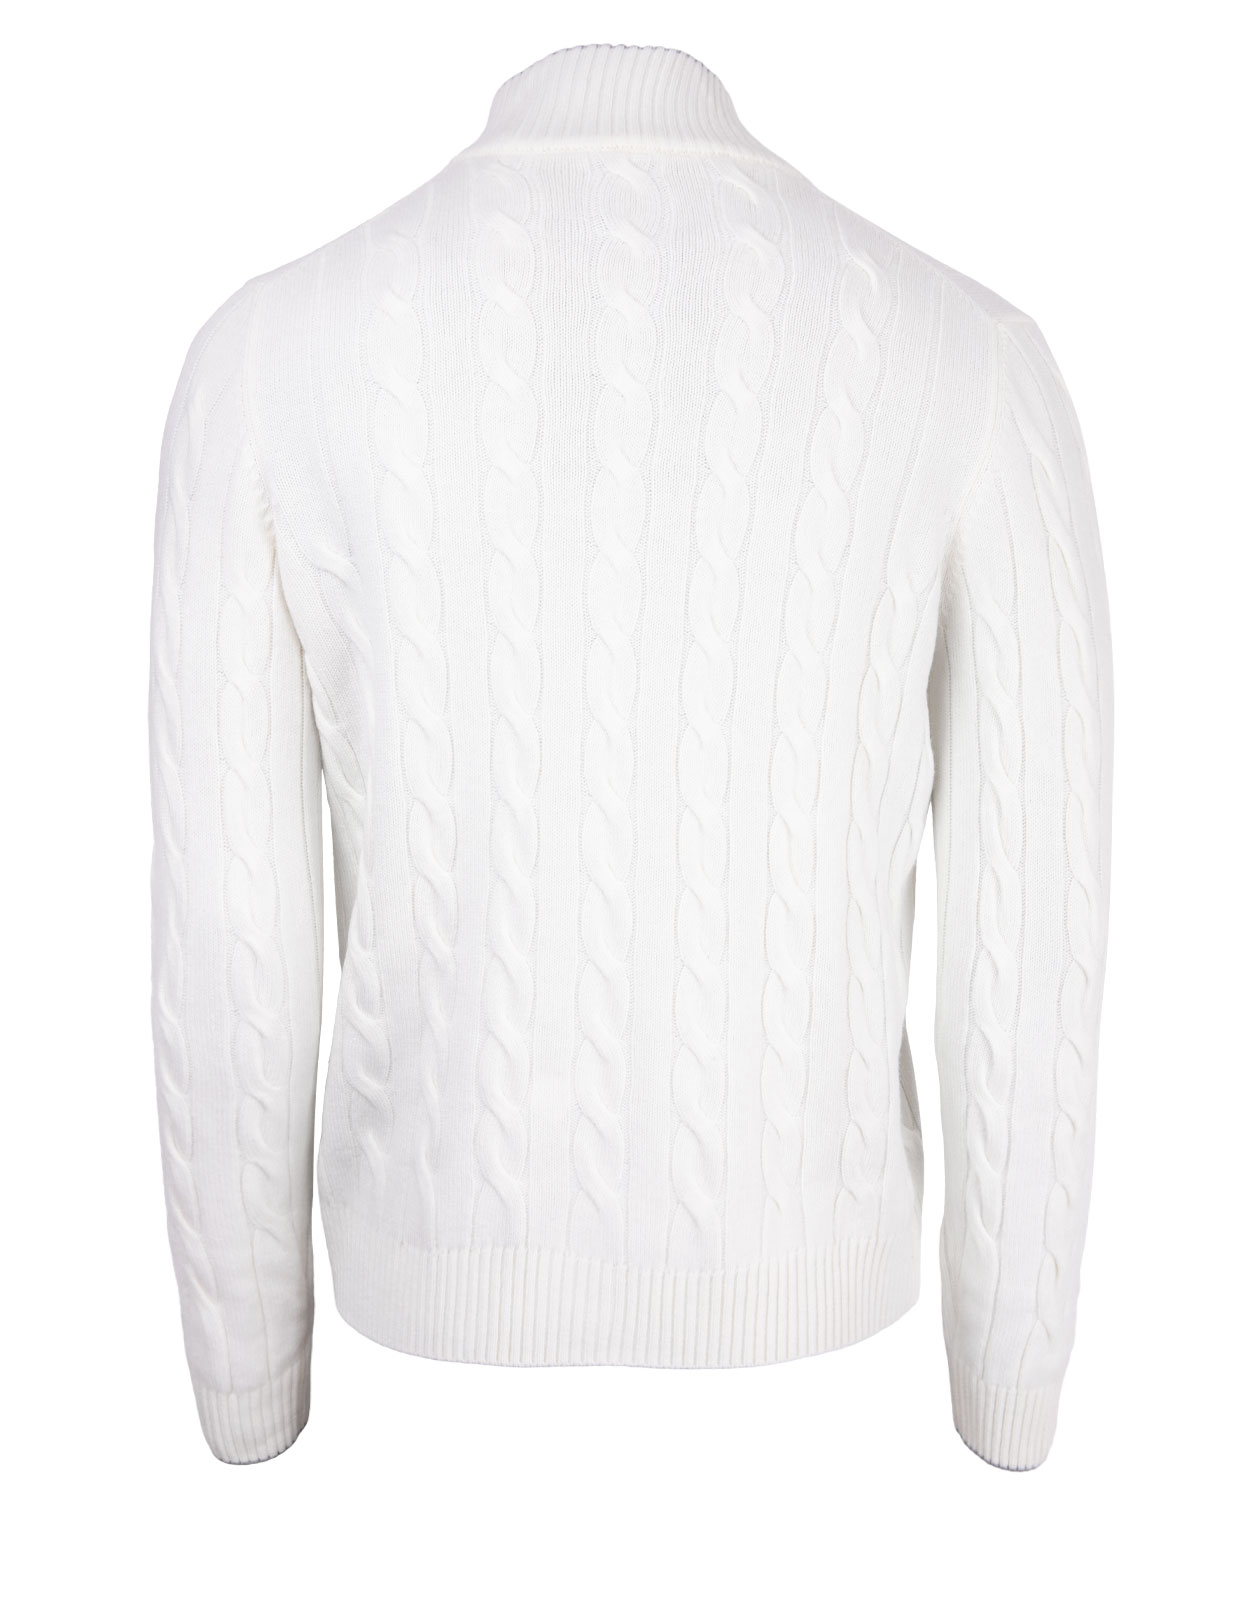 Full Button Cable Cardigan Wool & Cashmere White